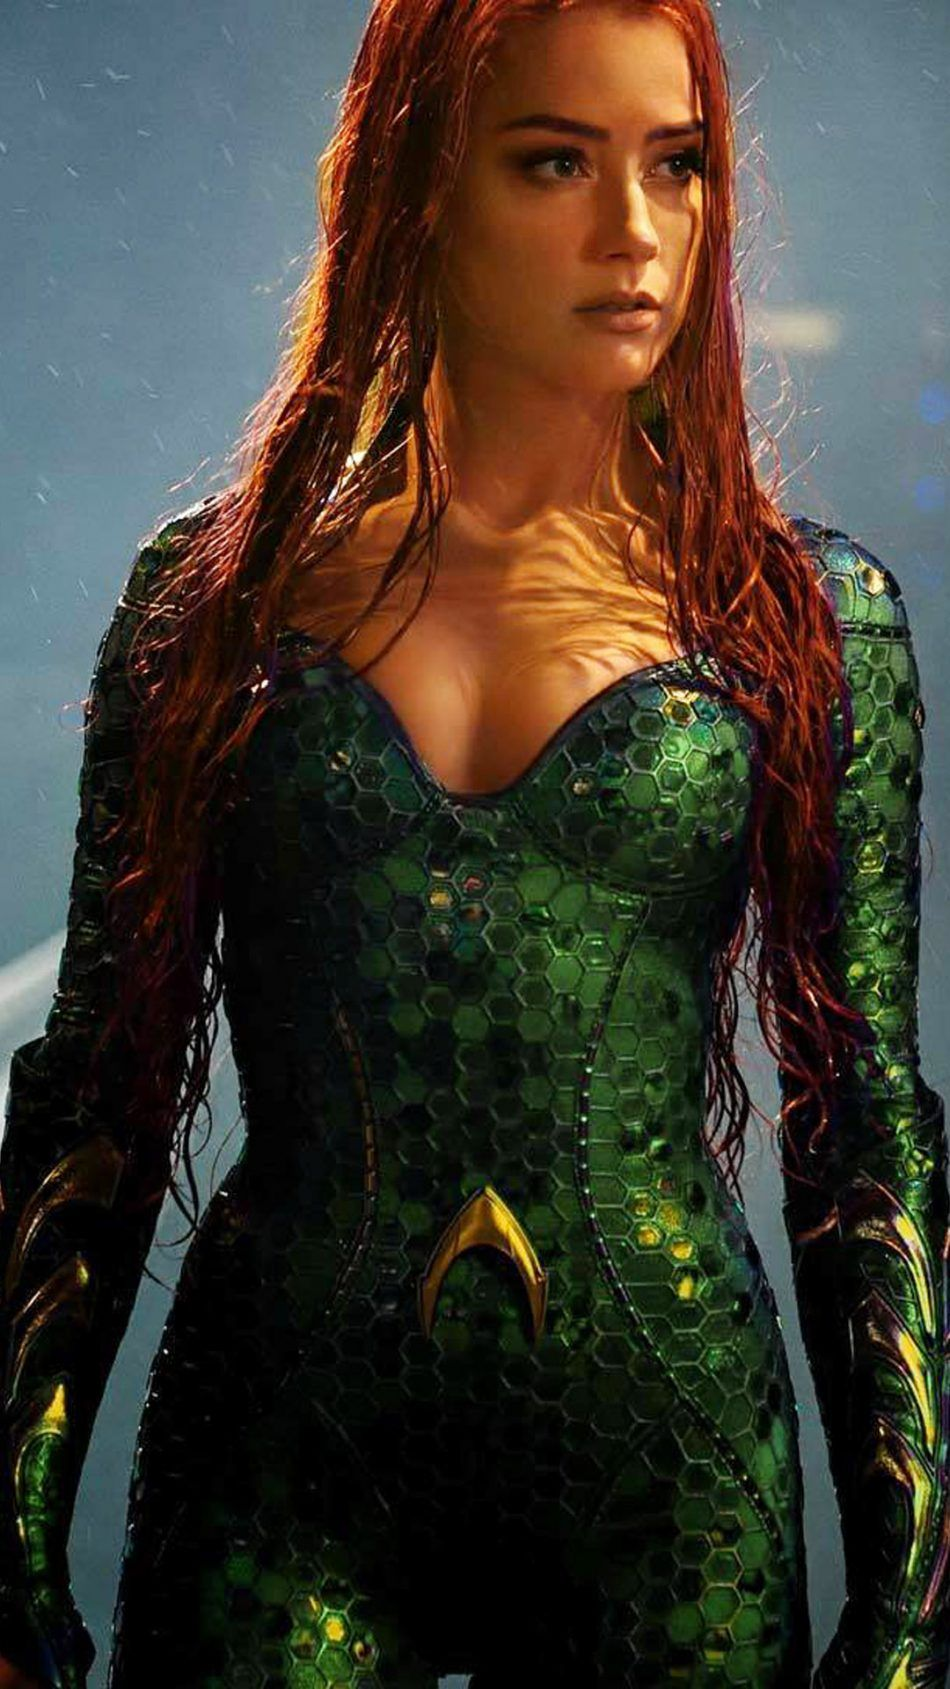 Amber Heard In Aquaman Hd Mobile Wallpaper